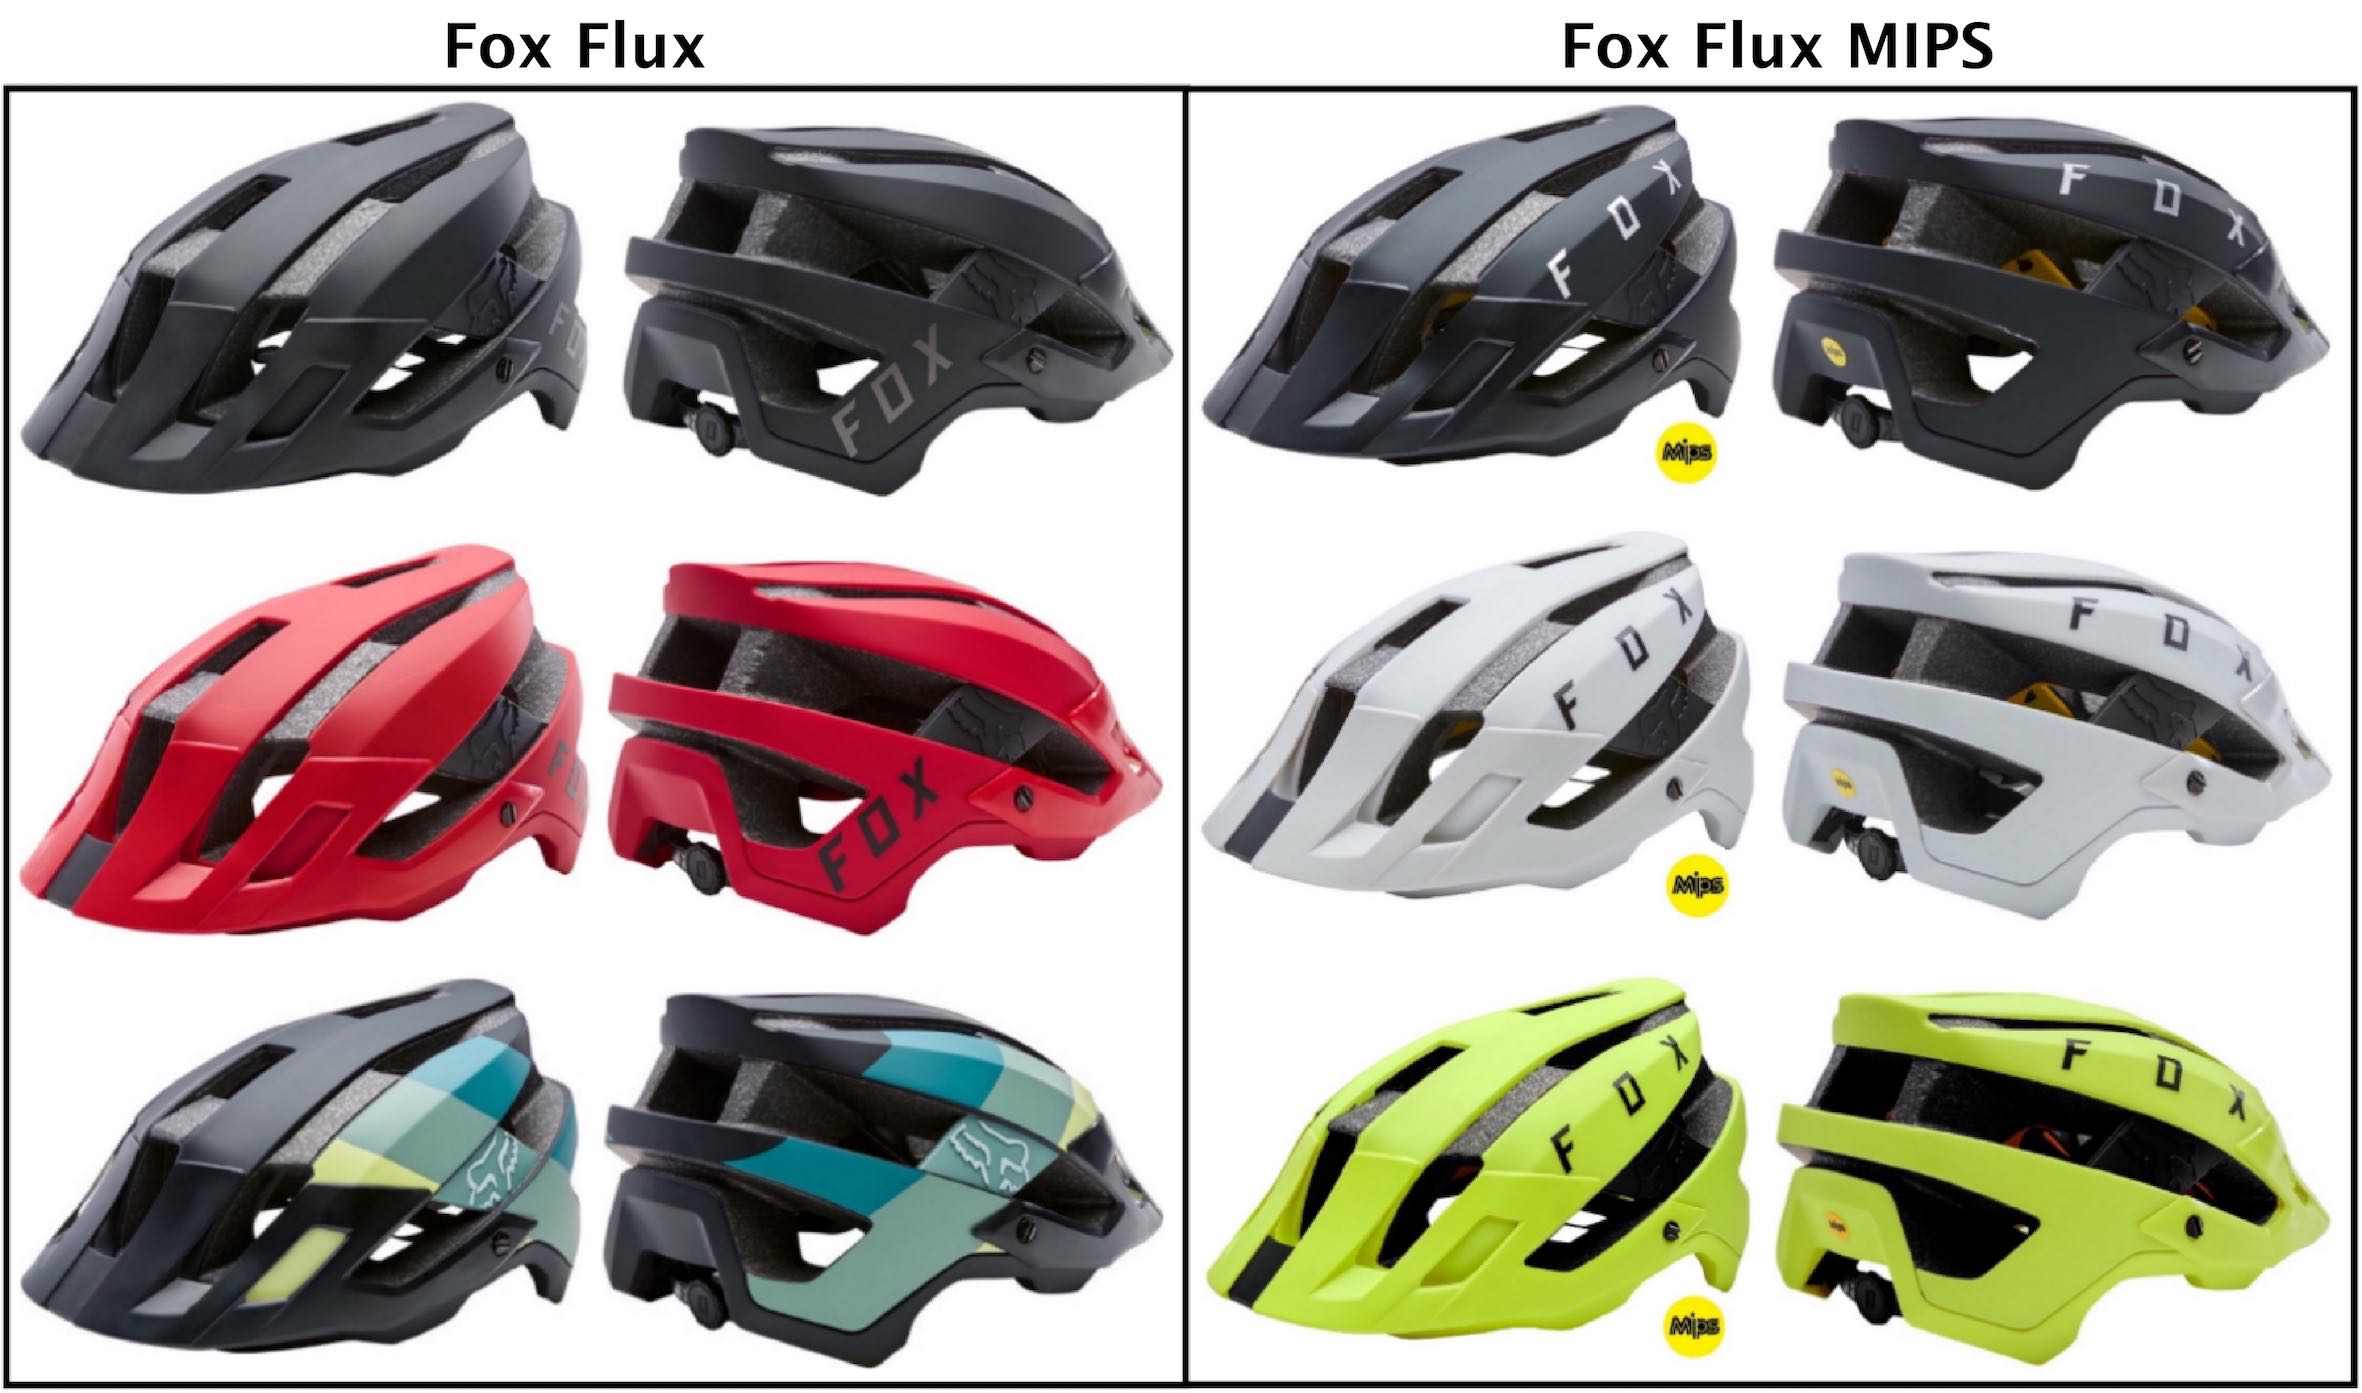 Introducing the all-new FOX Flux Trail and Enduro MTB Helmet